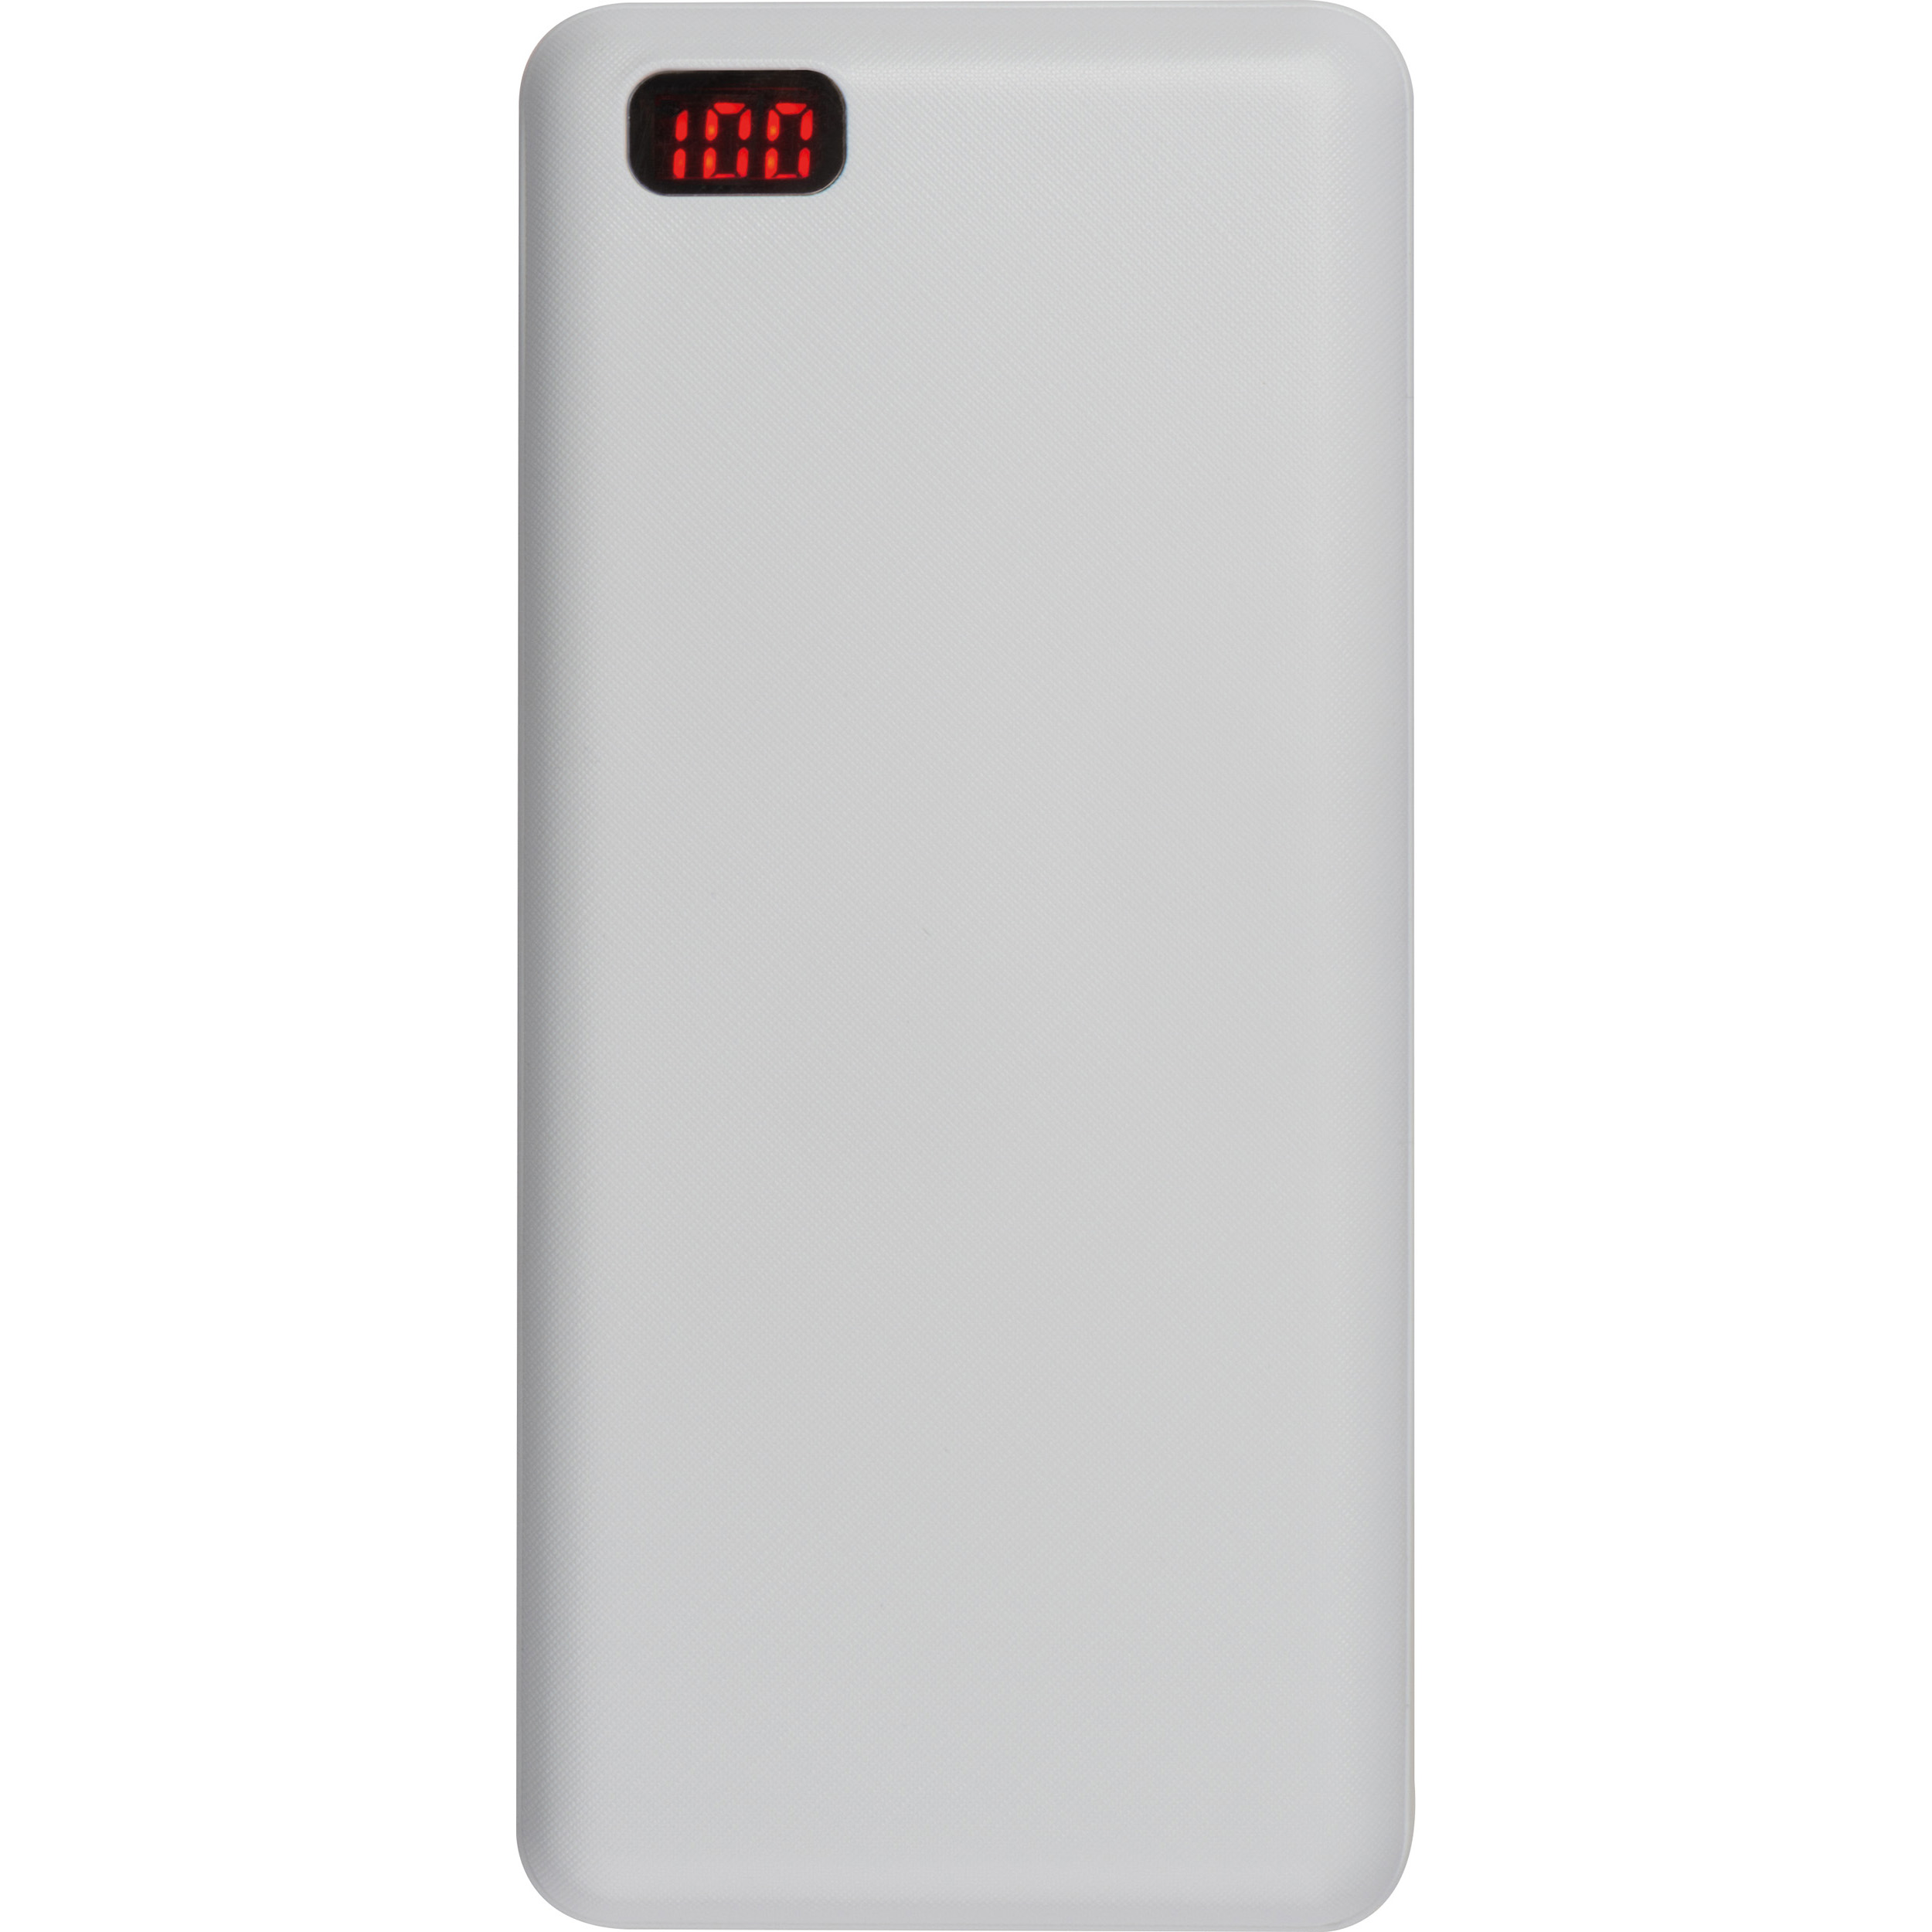 Chargeur 20.000 mAh